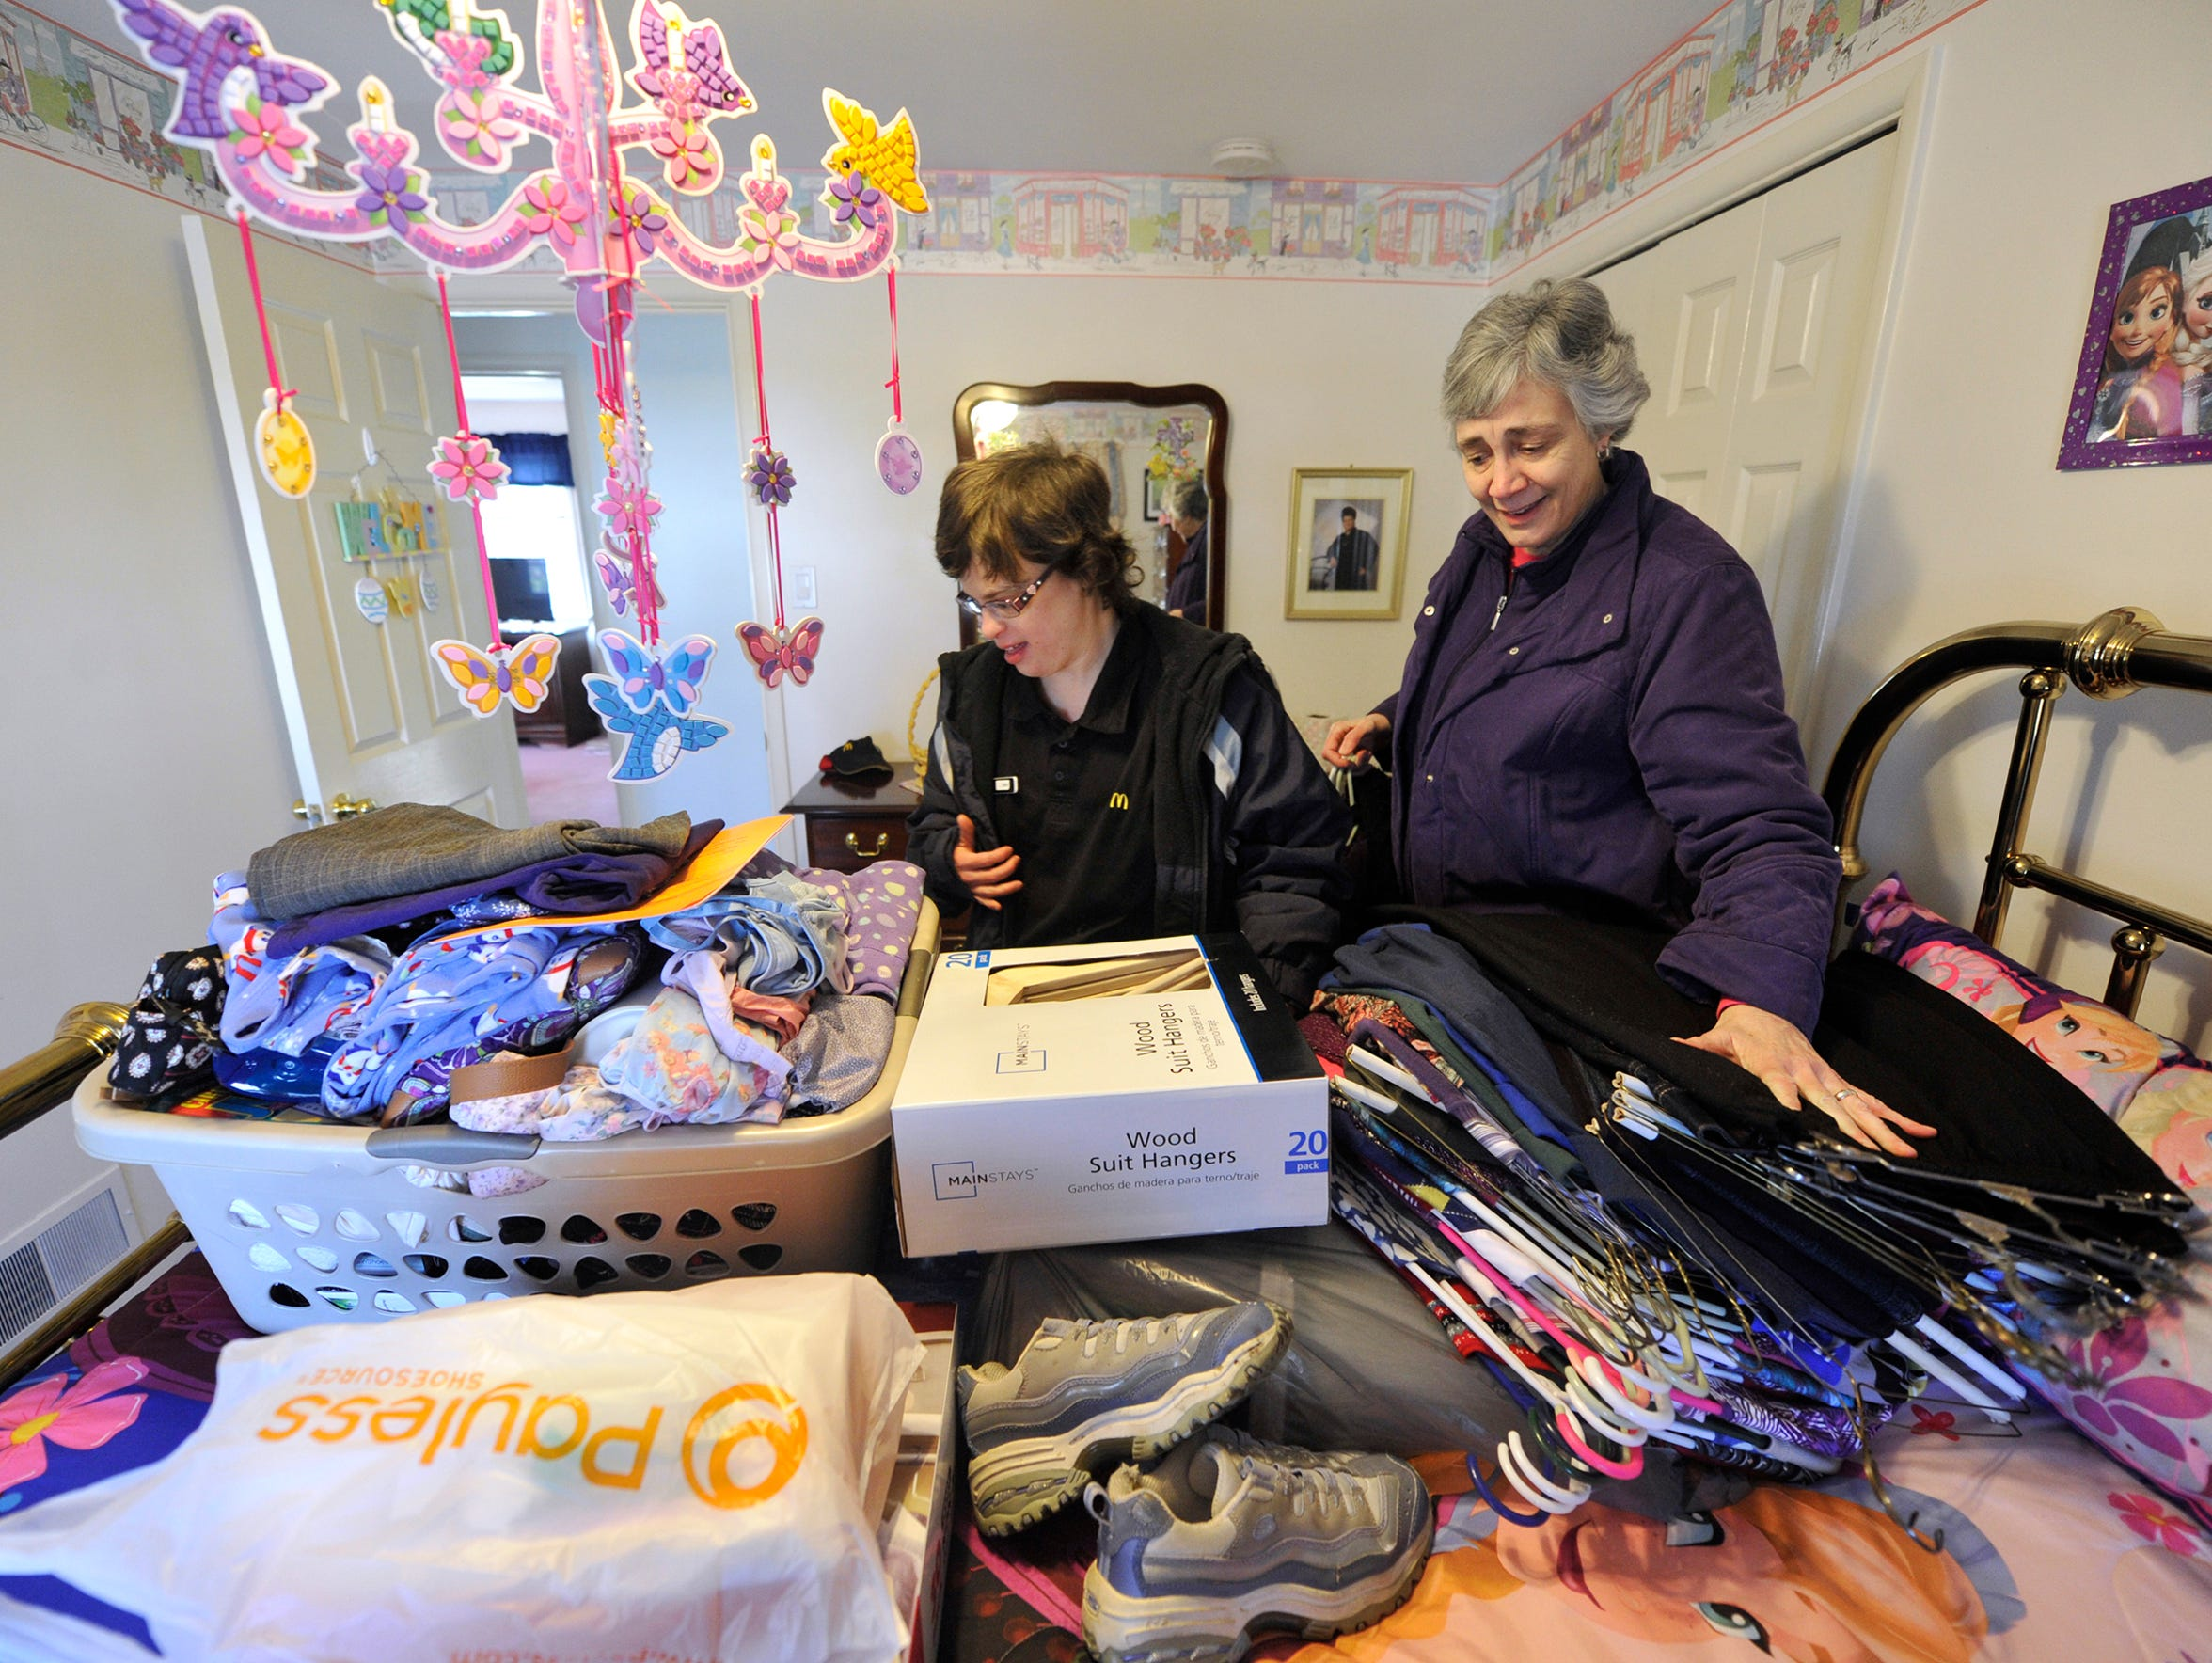 Suzanne Keim, right, helps her daughter, Sarah Keeney,